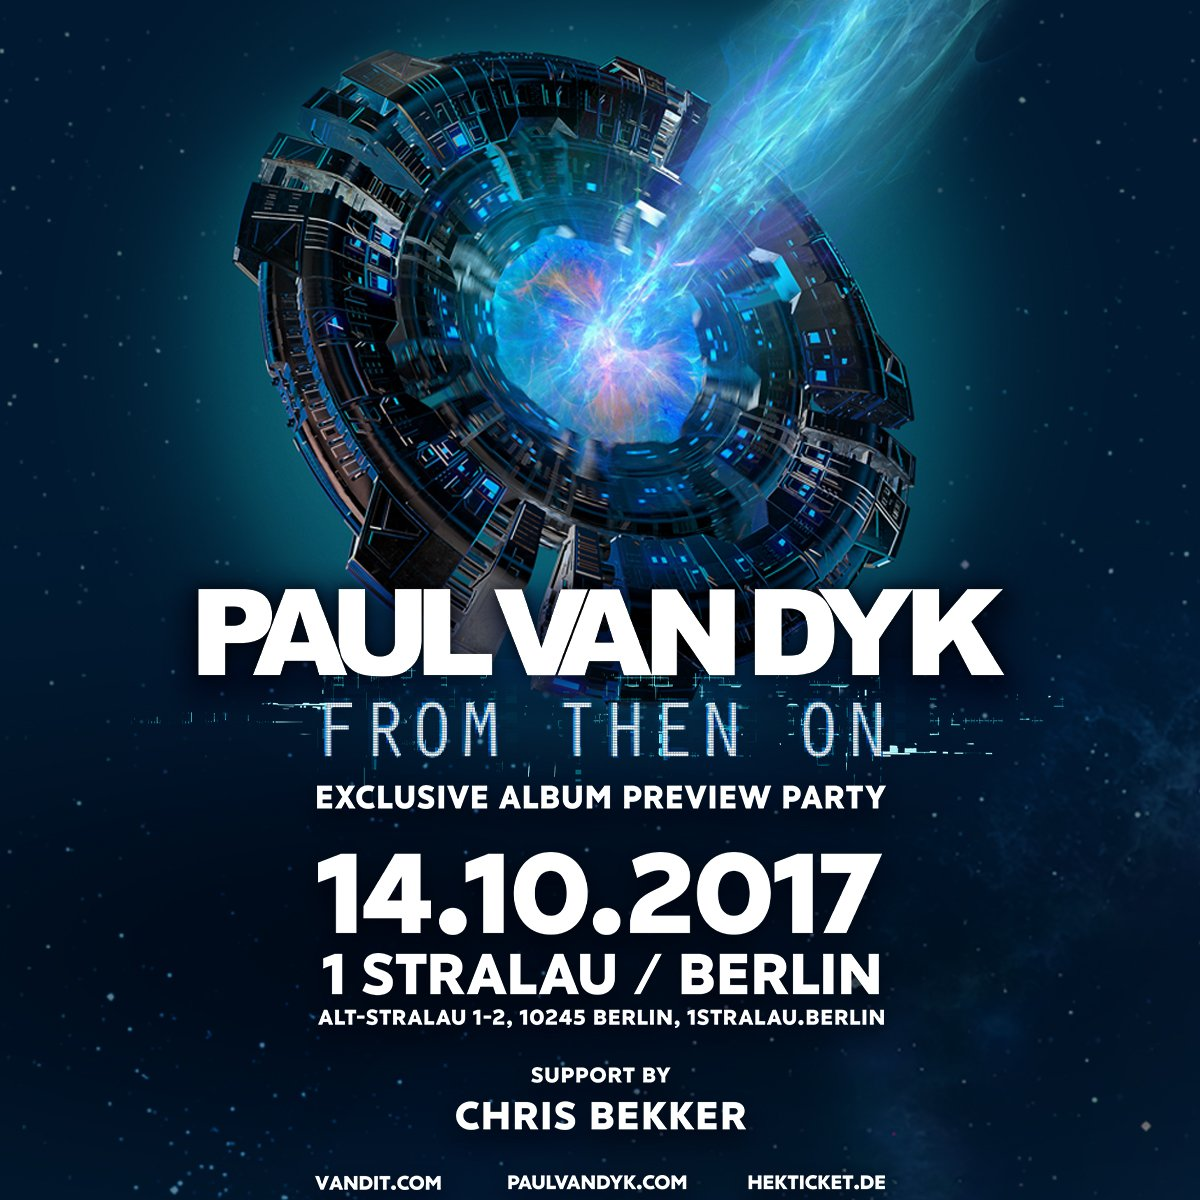 A musical journey - from #45RPM to #FromThenOn - Berlin, 14th of October https://t.co/winta8yNwU